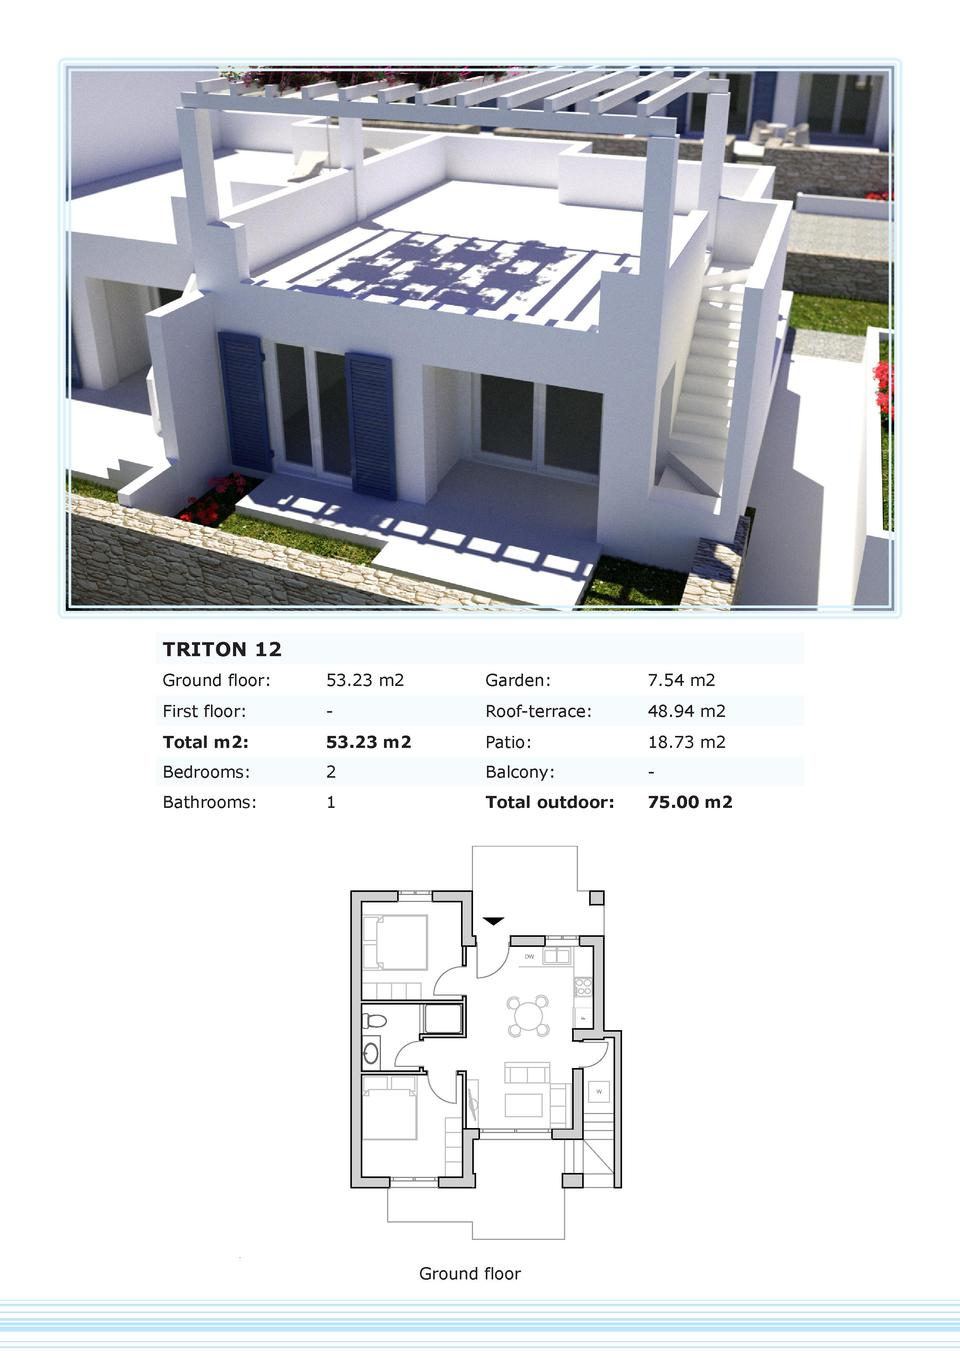 TRITON 12 Ground floor   53.23 m2  Garden   7.54 m2  First floor   -  Roof-terrace   48.94 m2  Total m2   53.23 m2  Patio ...